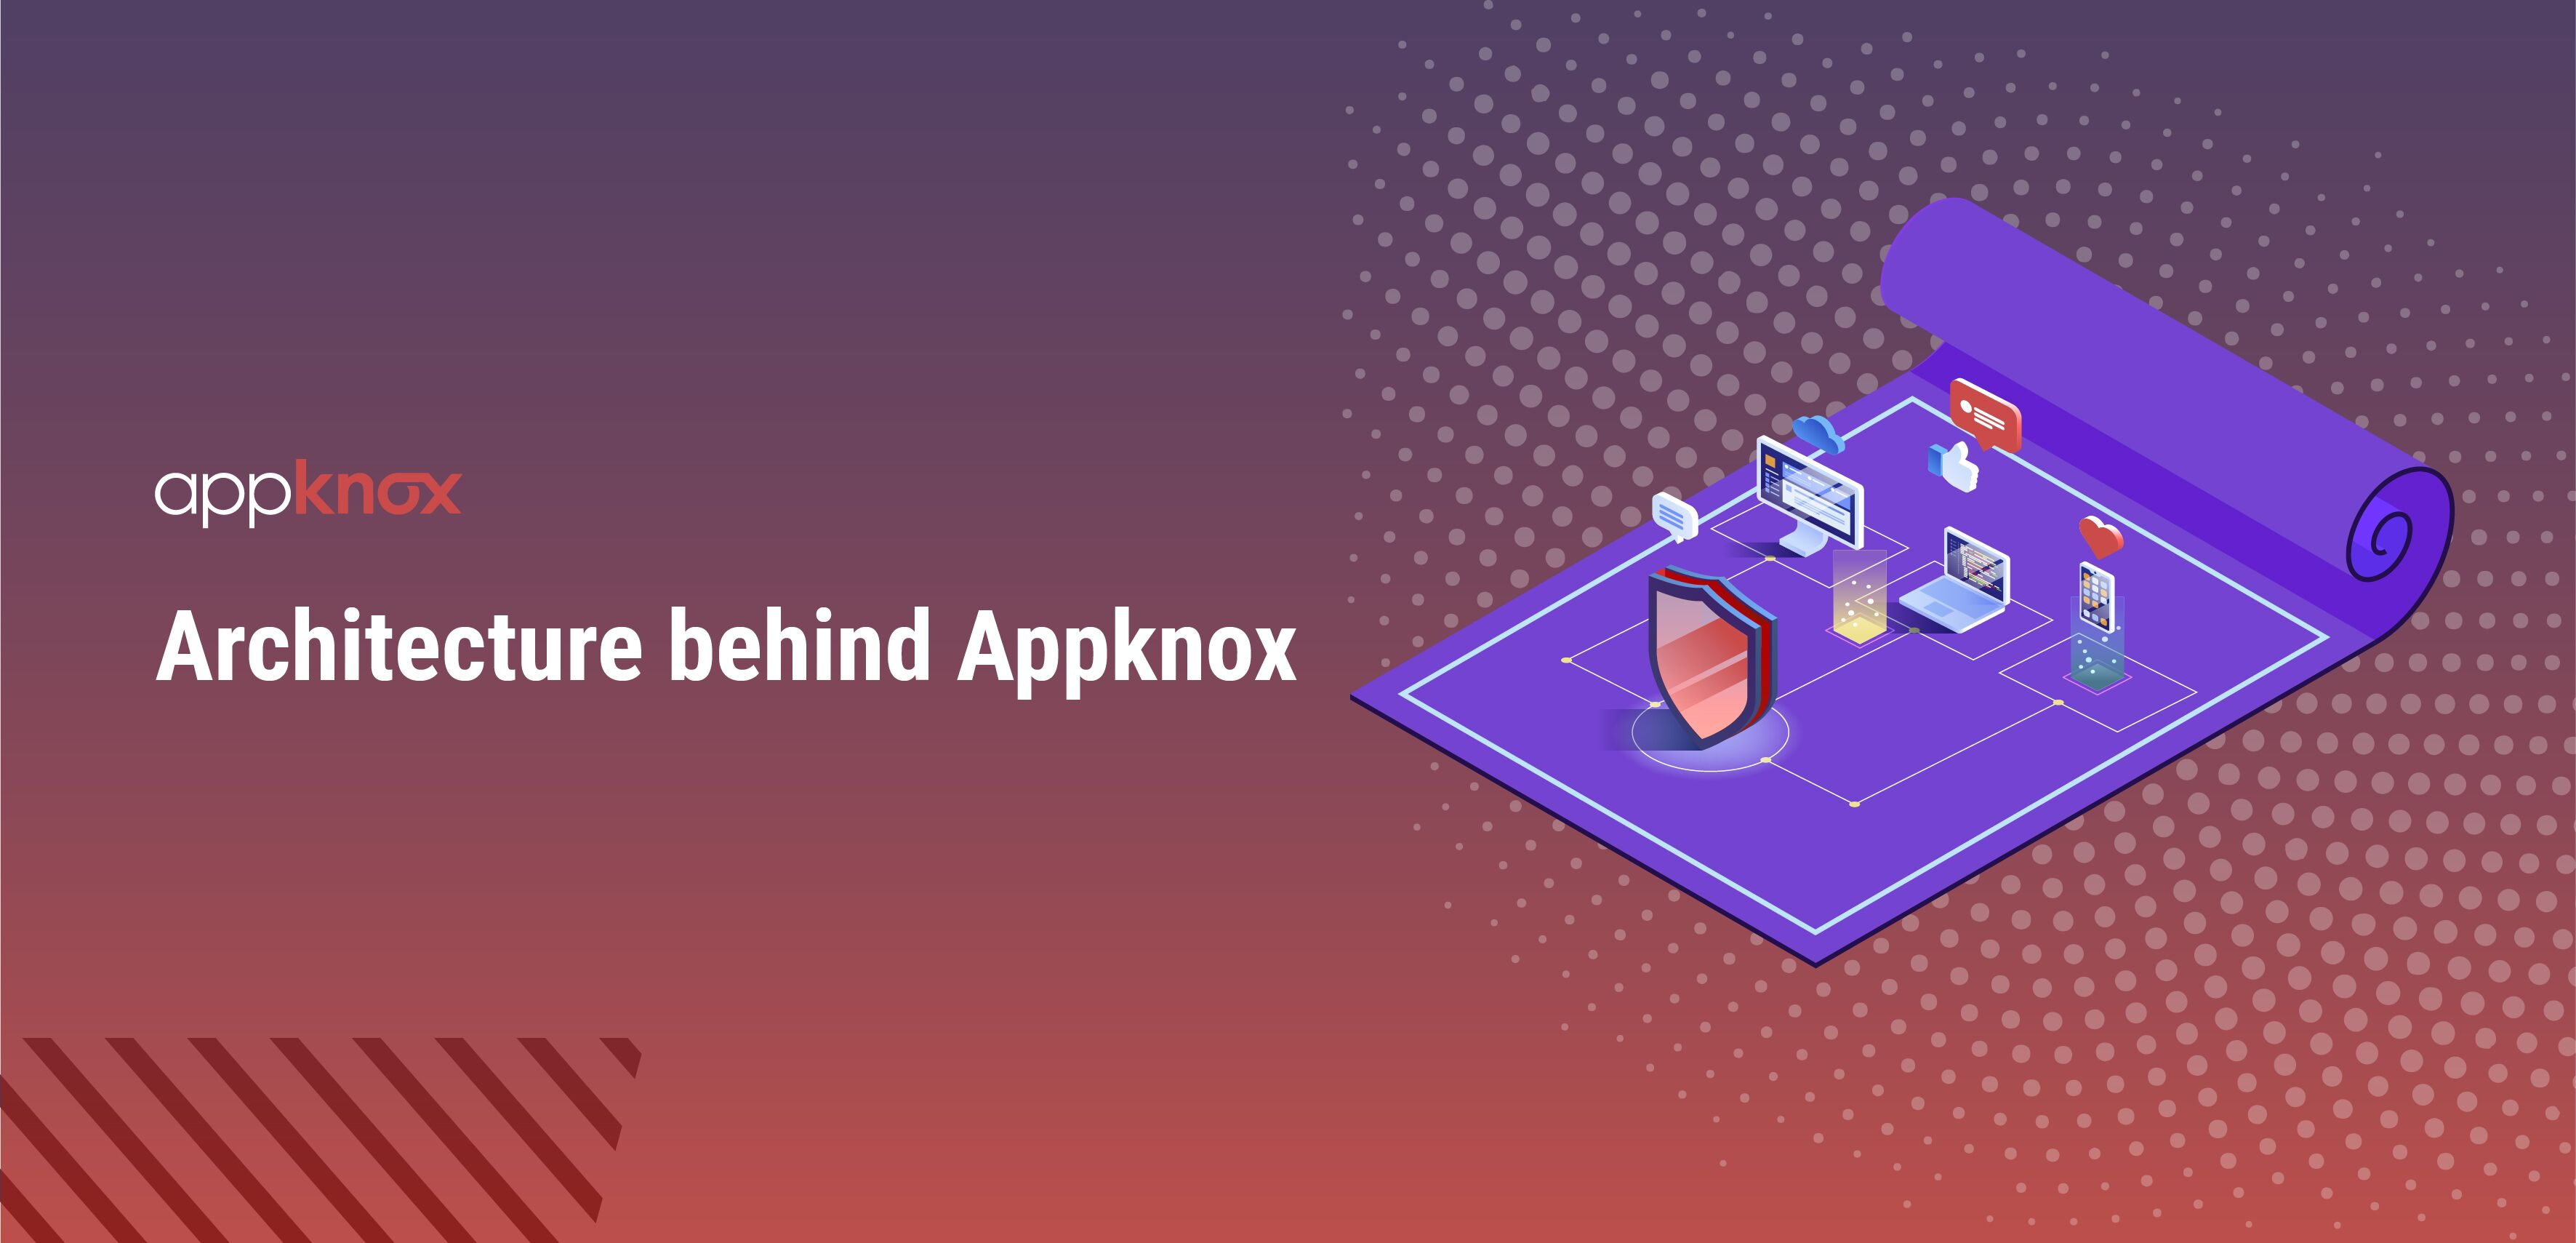 Architecture behind Appknox